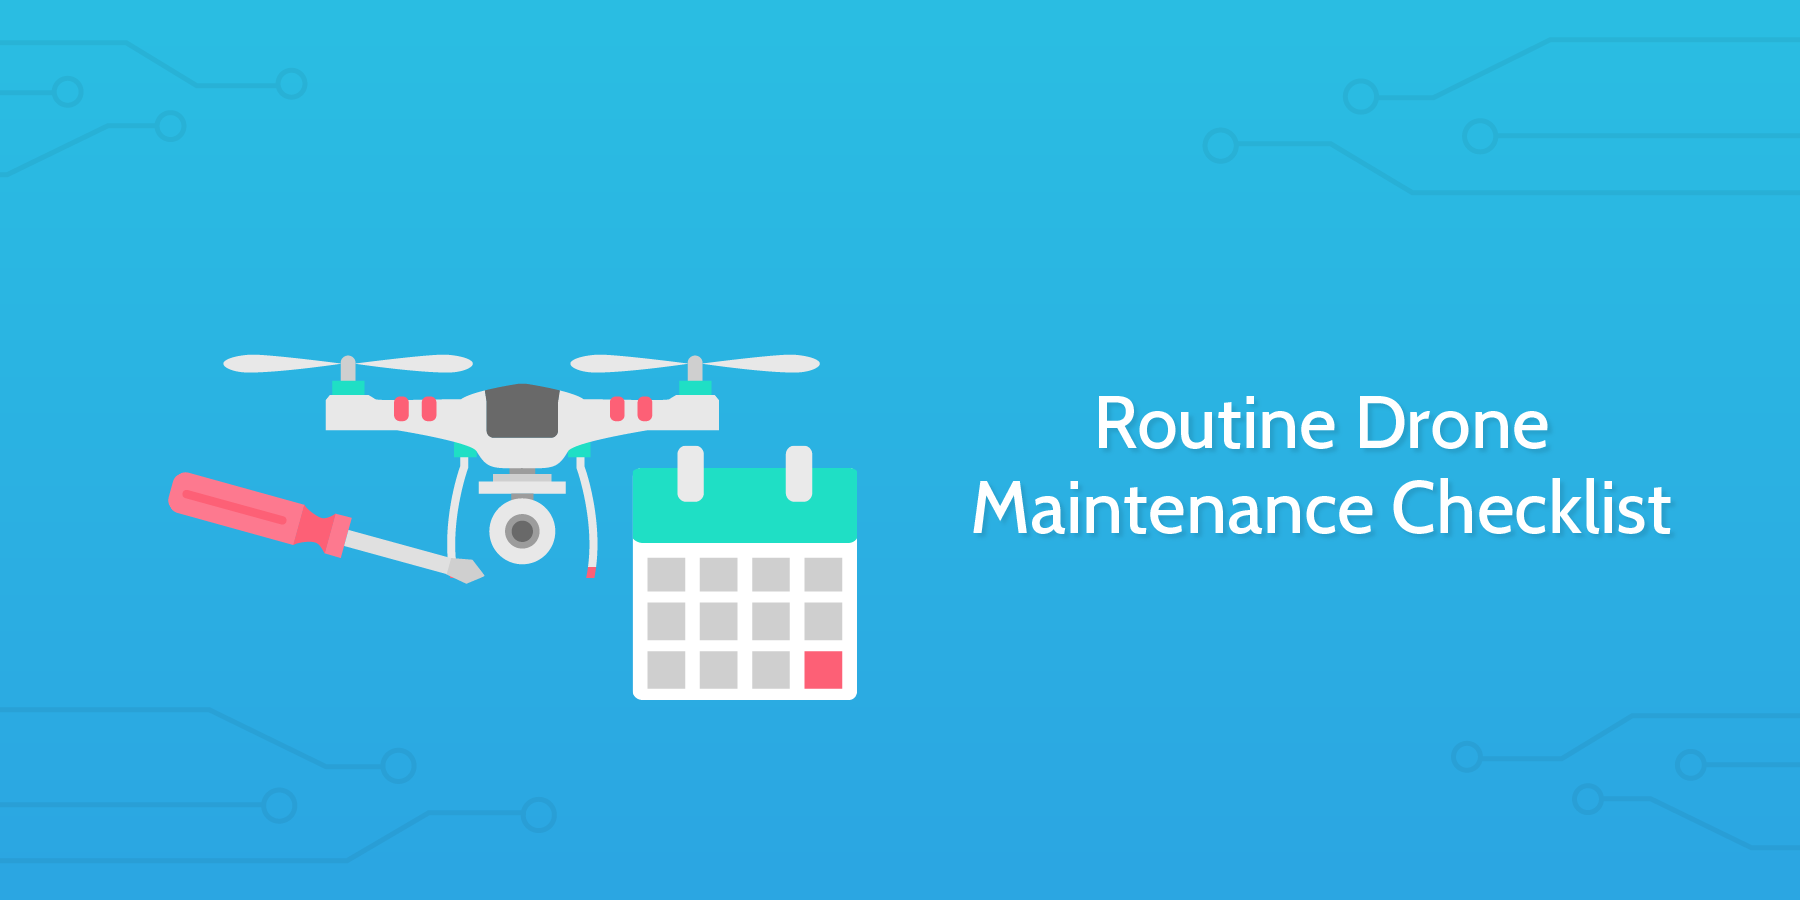 Routine Drone Maintenance Checklist